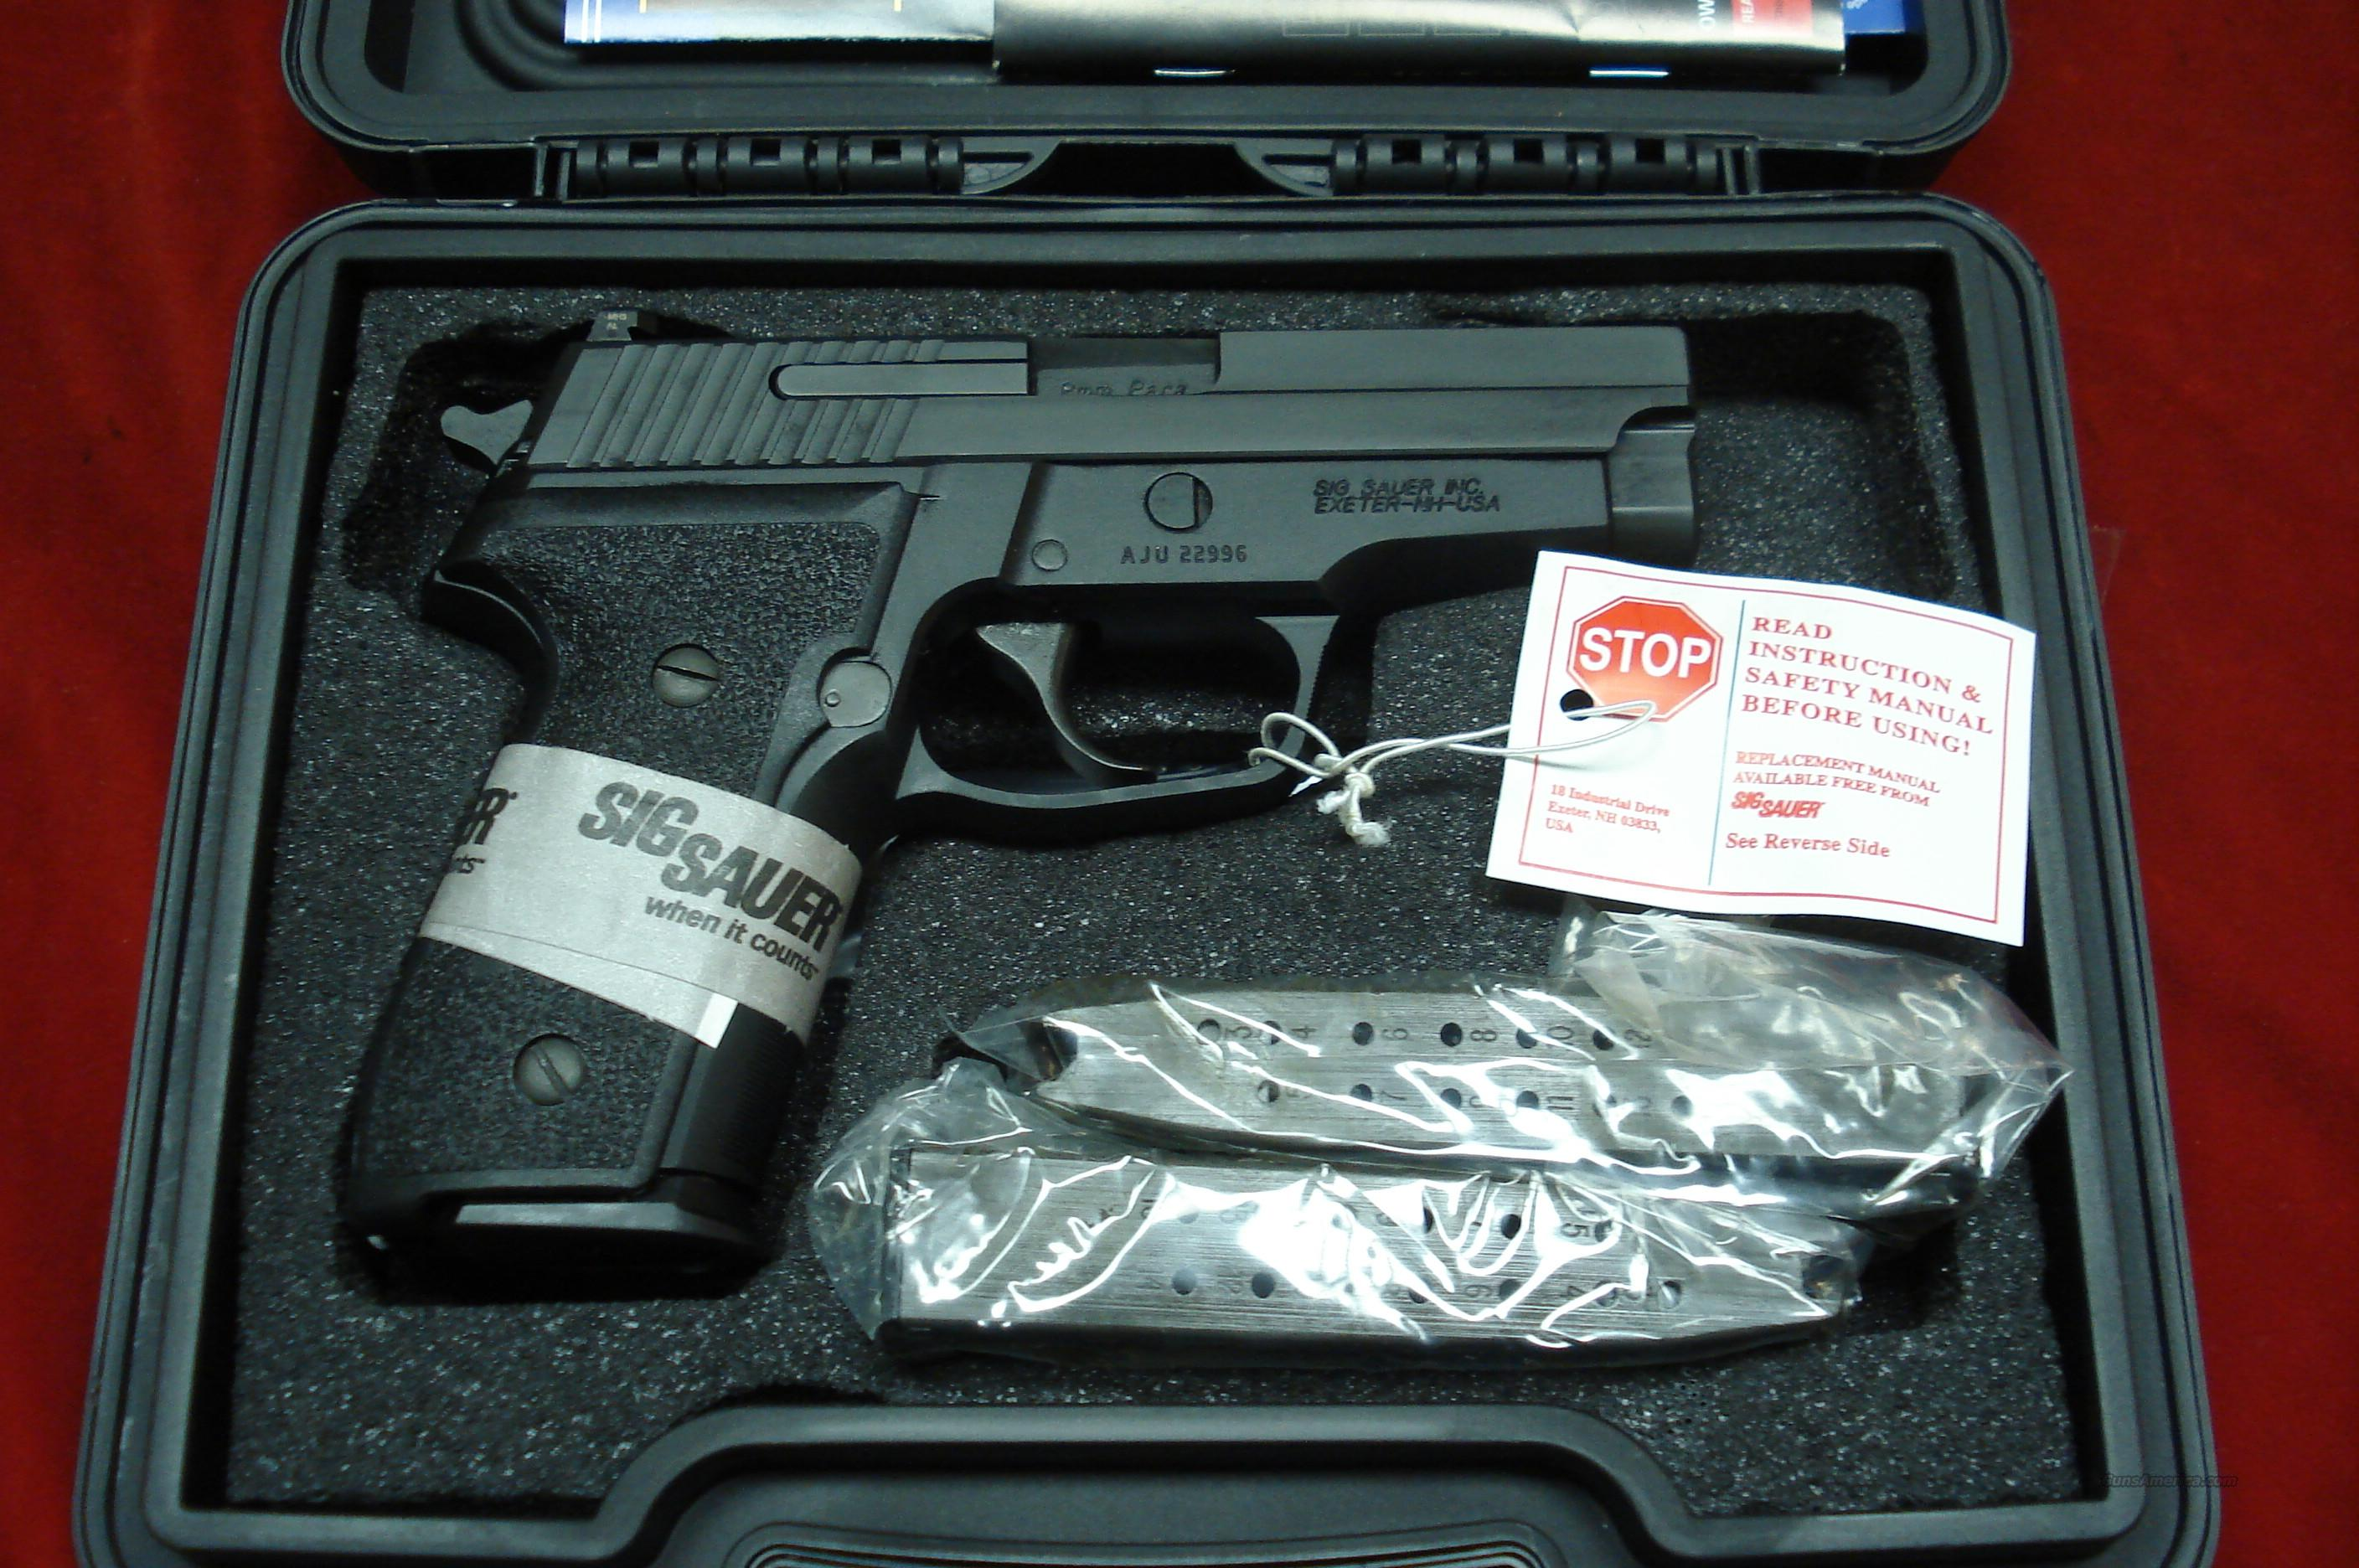 SIG SAUER M11-A1 P238 9MM WIYH NIGHT SIGHTS AND 3 HIGH CAP MAGAZINES NEW  Guns > Pistols > Sig - Sauer/Sigarms Pistols > P228